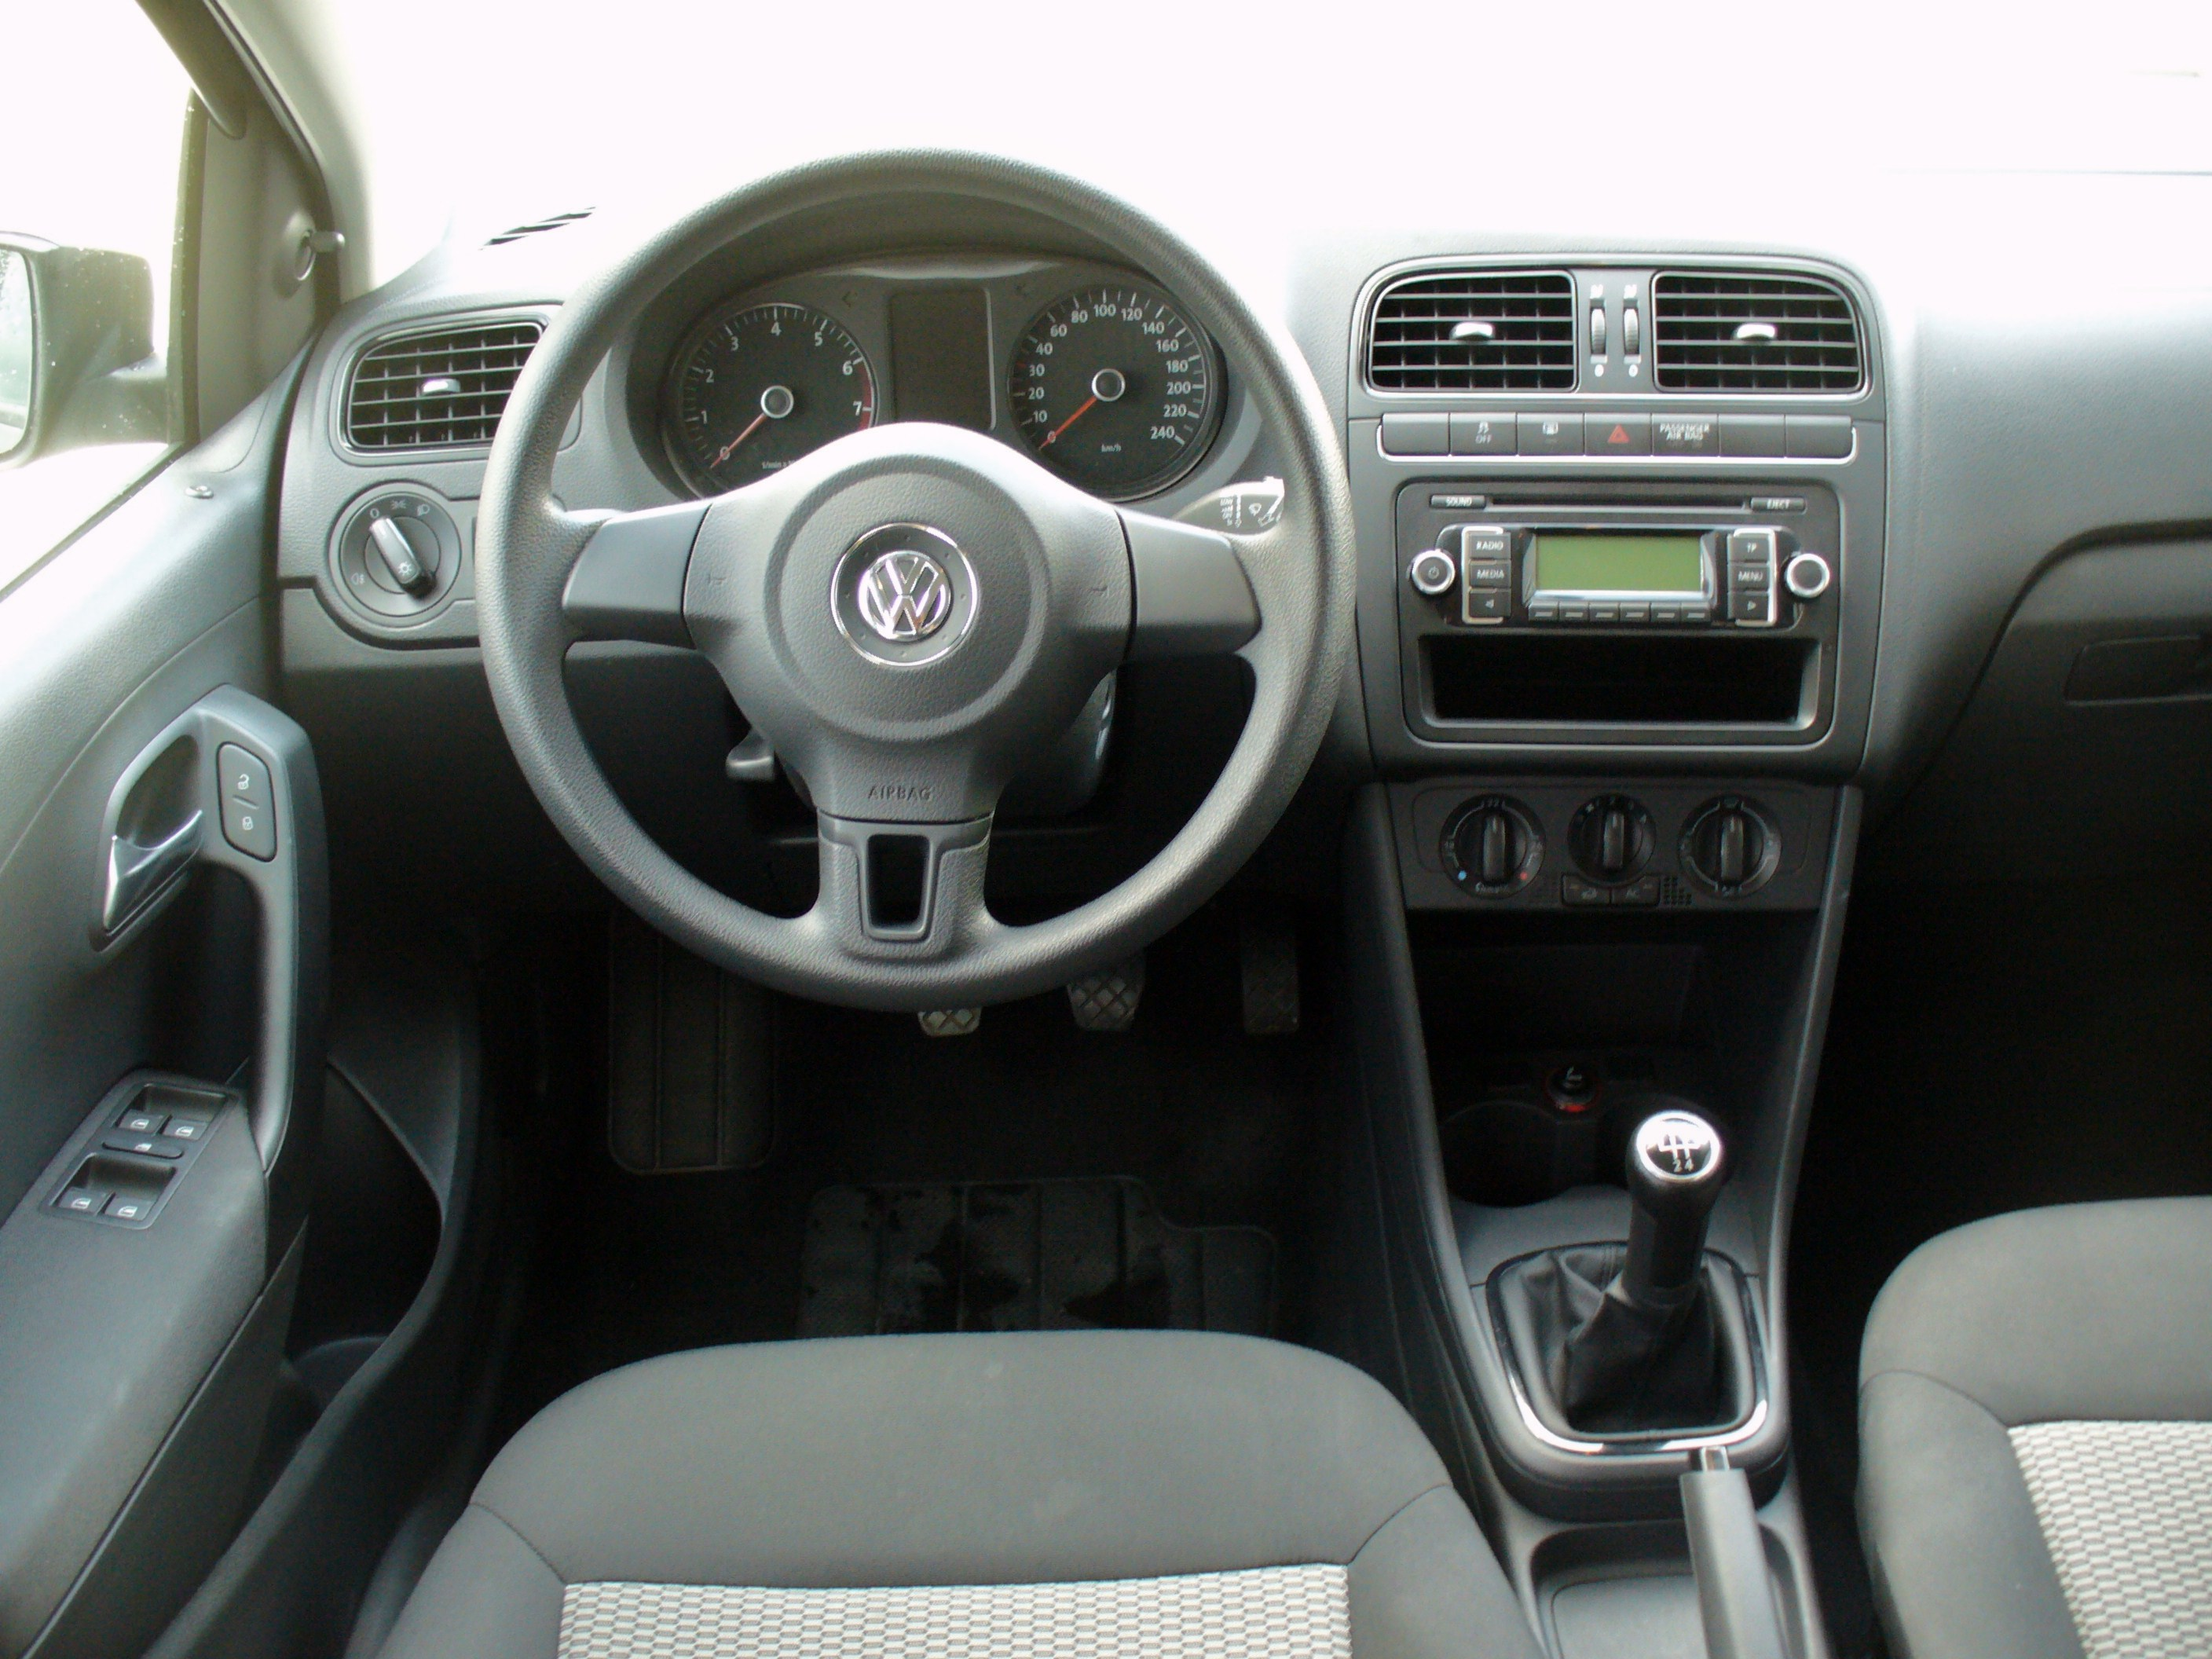 2000 vw jetta interior with File Vw Polo V 1 2 Trendline Interieur on 921 Volkswagen Bora 2006 Wallpaper 1 besides 2003 Volkswagen Passat Pictures C5878 pi36579254 in addition 2005 Volkswagen Passat Gls Tdi Pictures T23841 pi15915857 furthermore Cars Ads 1980s besides 2011 Optima.